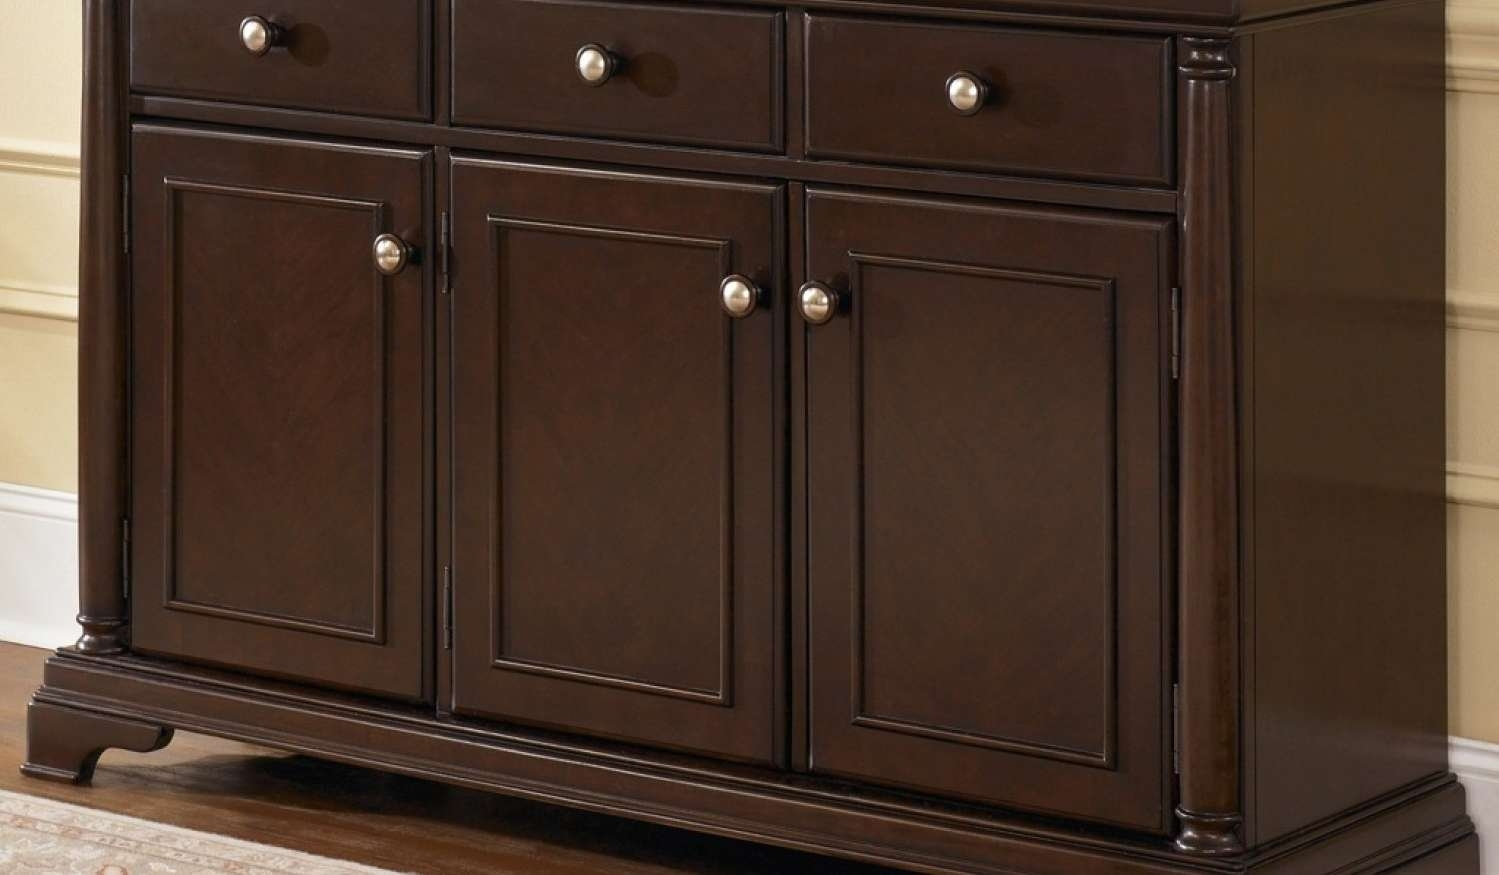 Cabinet : Amazing Buffet Sideboards Amazing Kitchen Credenza Hutch With Regard To Kitchen Sideboards Buffets (View 5 of 20)